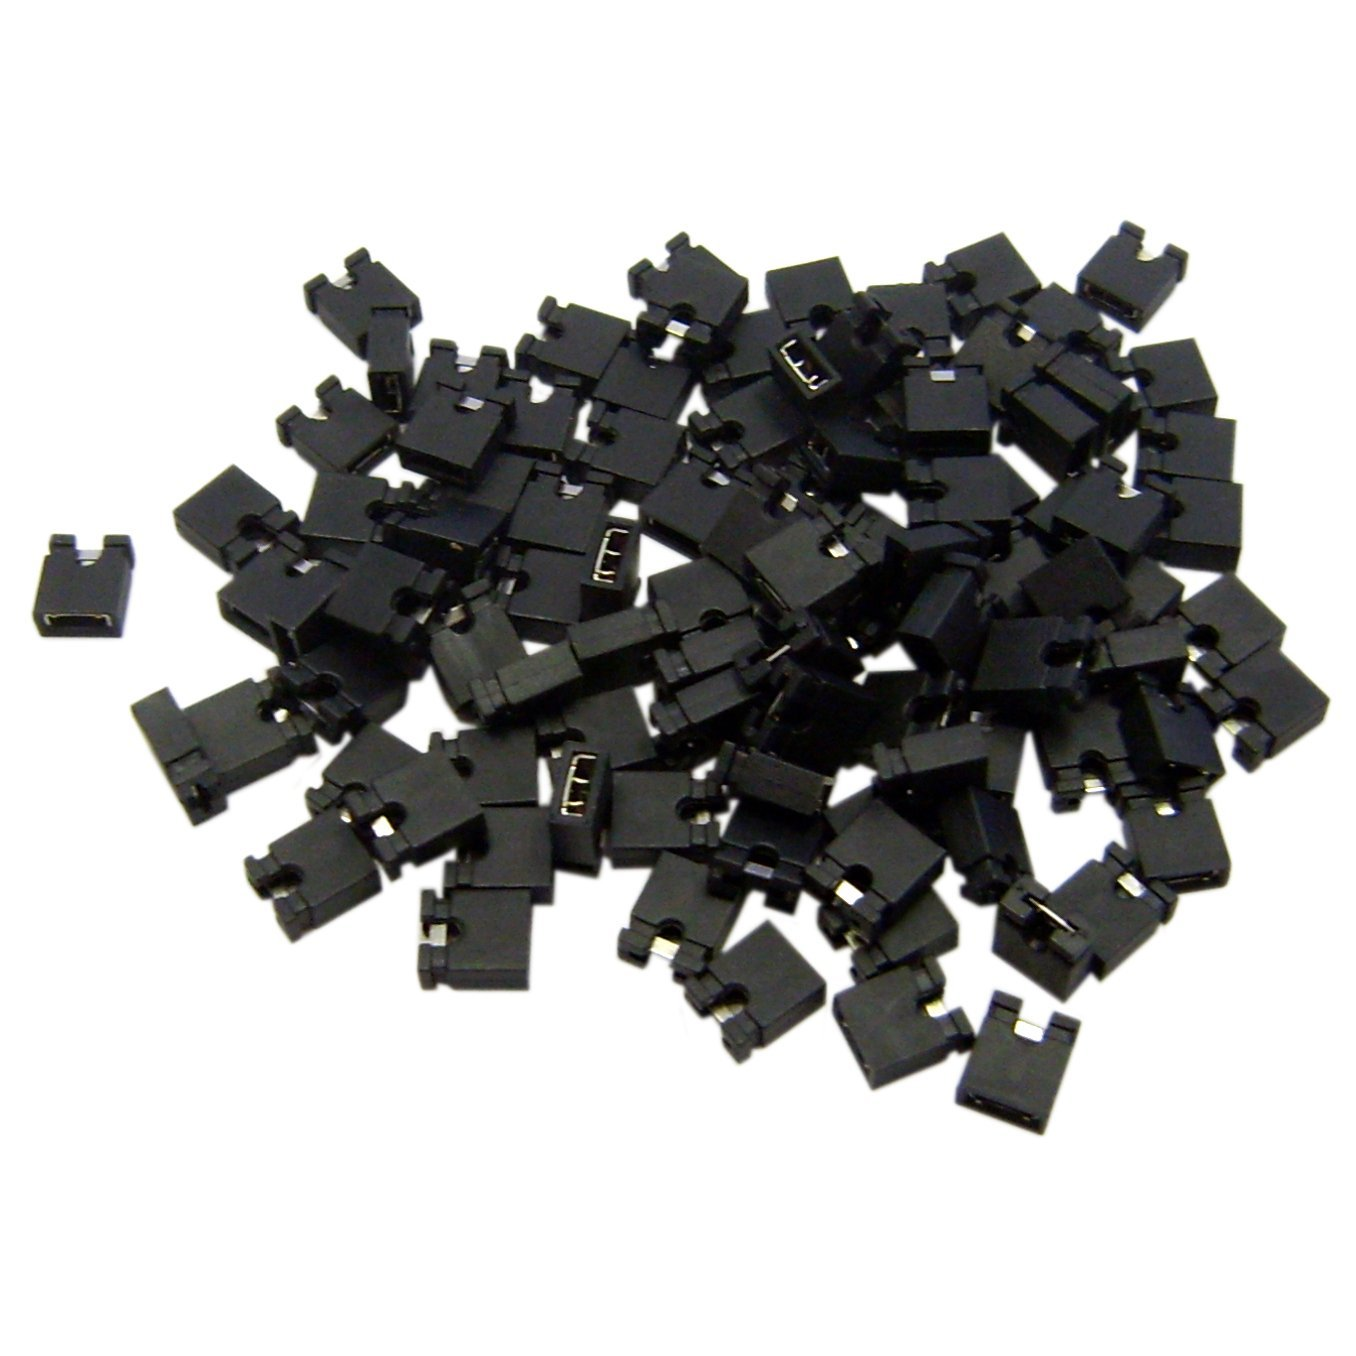 все цены на 200pcs Pin Header Jumper blocks Connector 2.54 mm for 3 1/2 Hard Disk Drive, CD/DVD Drive, Motherboard and/or Expansion Card онлайн